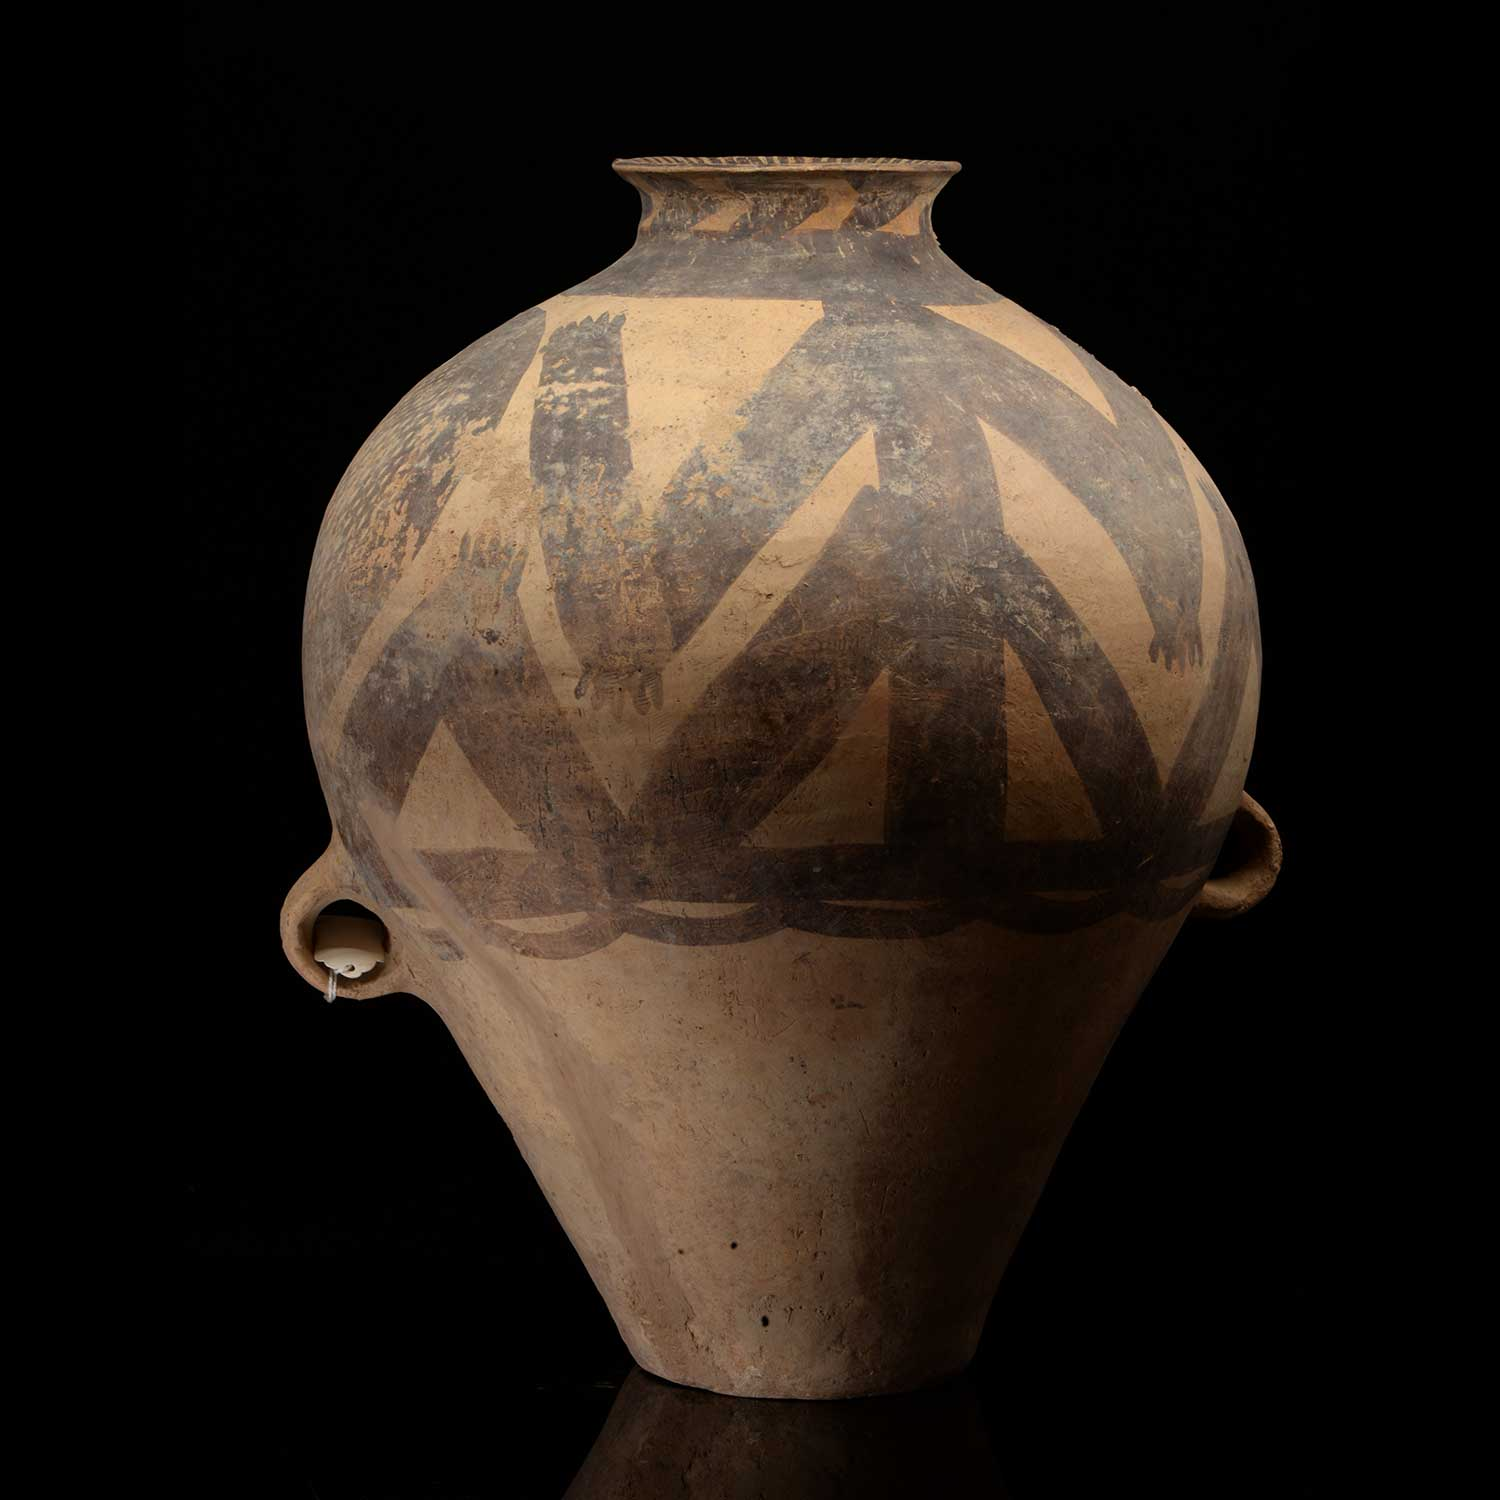 A large Yangshao terracotta Decorated Jar, Neolithic Period, ca. 3rd millennium BCE - Sands of Time Ancient Art